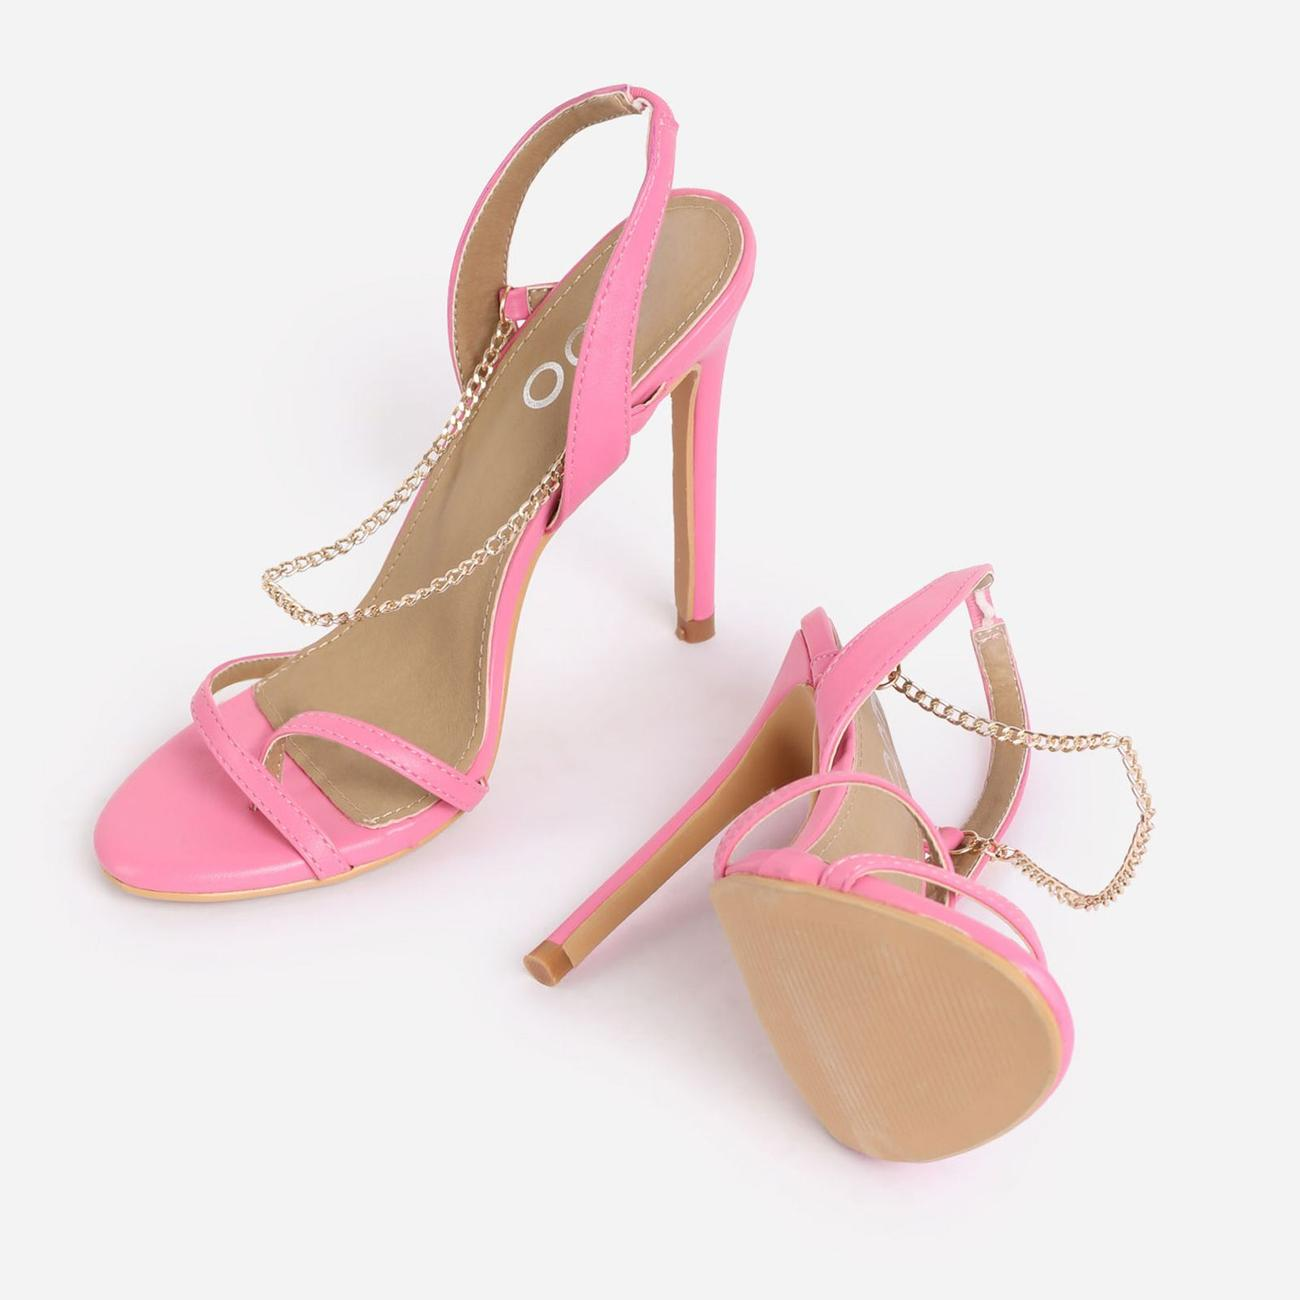 Peachy Chain Detail Sling Back Heel In Pink Faux Leather Image 4